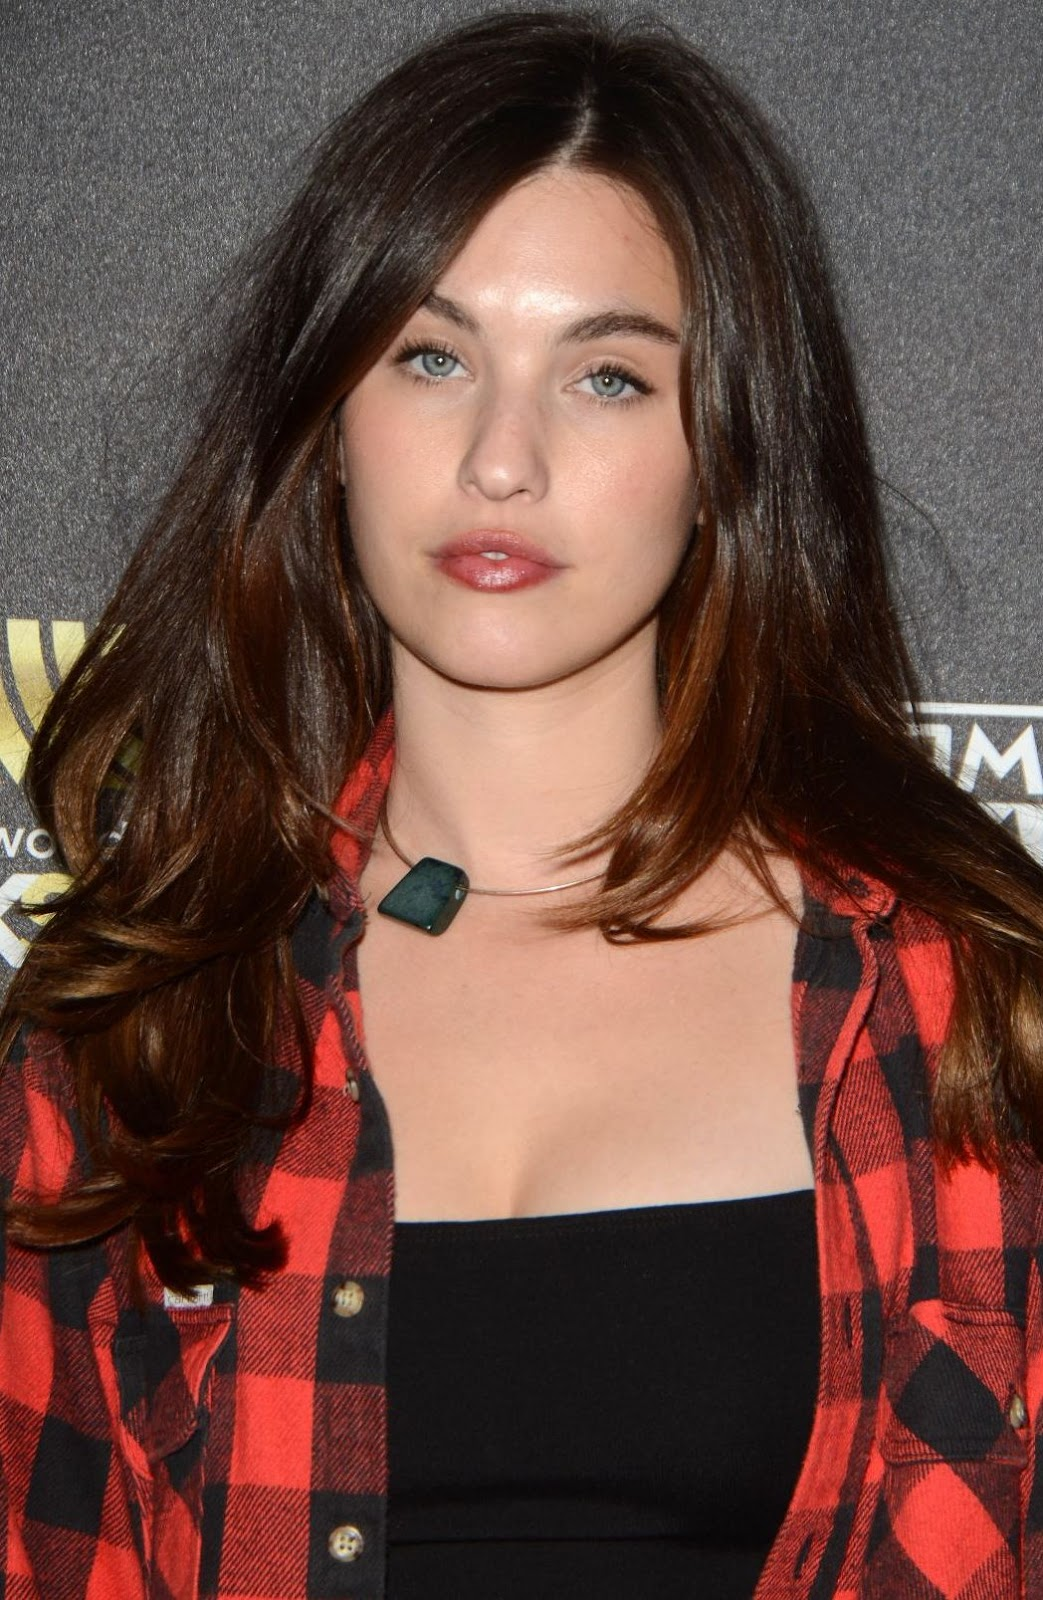 Celebrites Rainey Qualley naked (12 foto and video), Topless, Paparazzi, Selfie, cleavage 2015